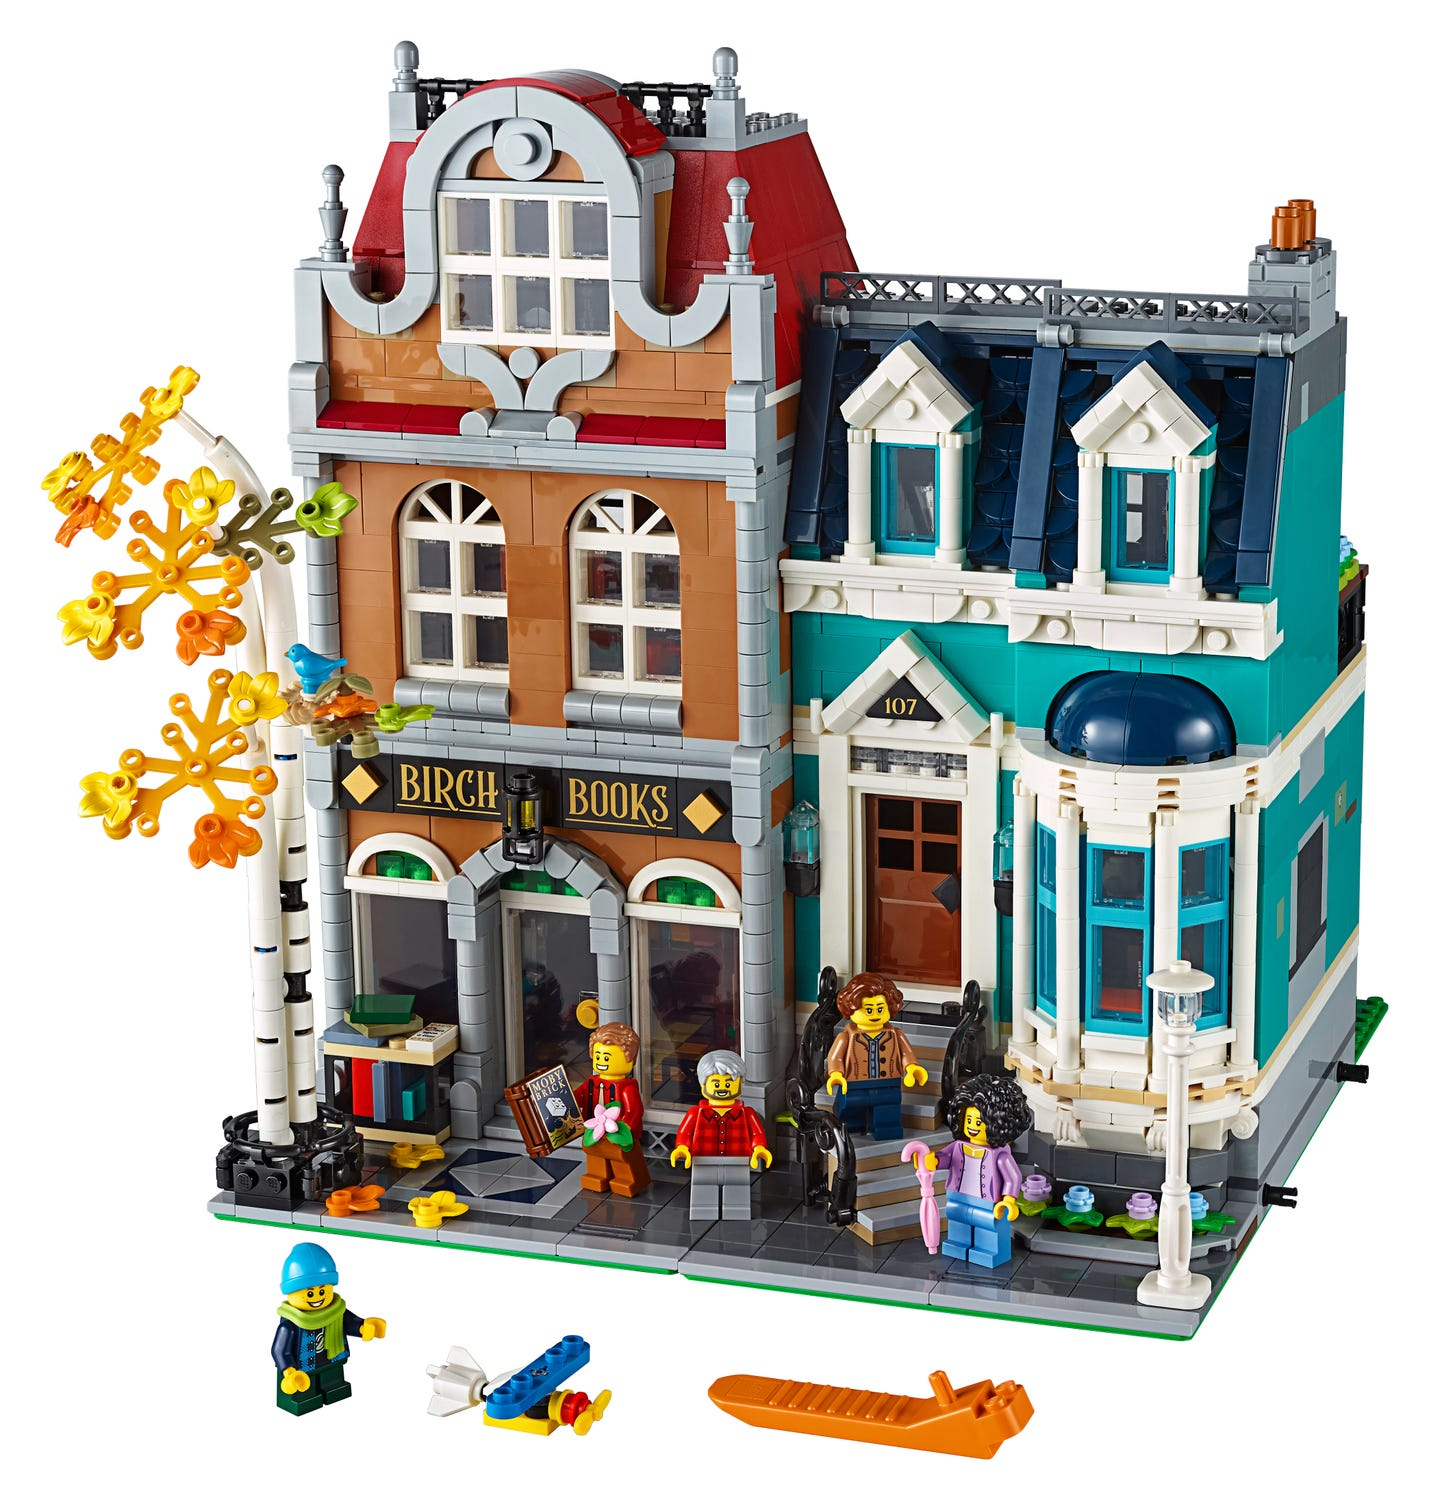 Bookshop 10270 Creator Expert Buy Online At The Official Lego